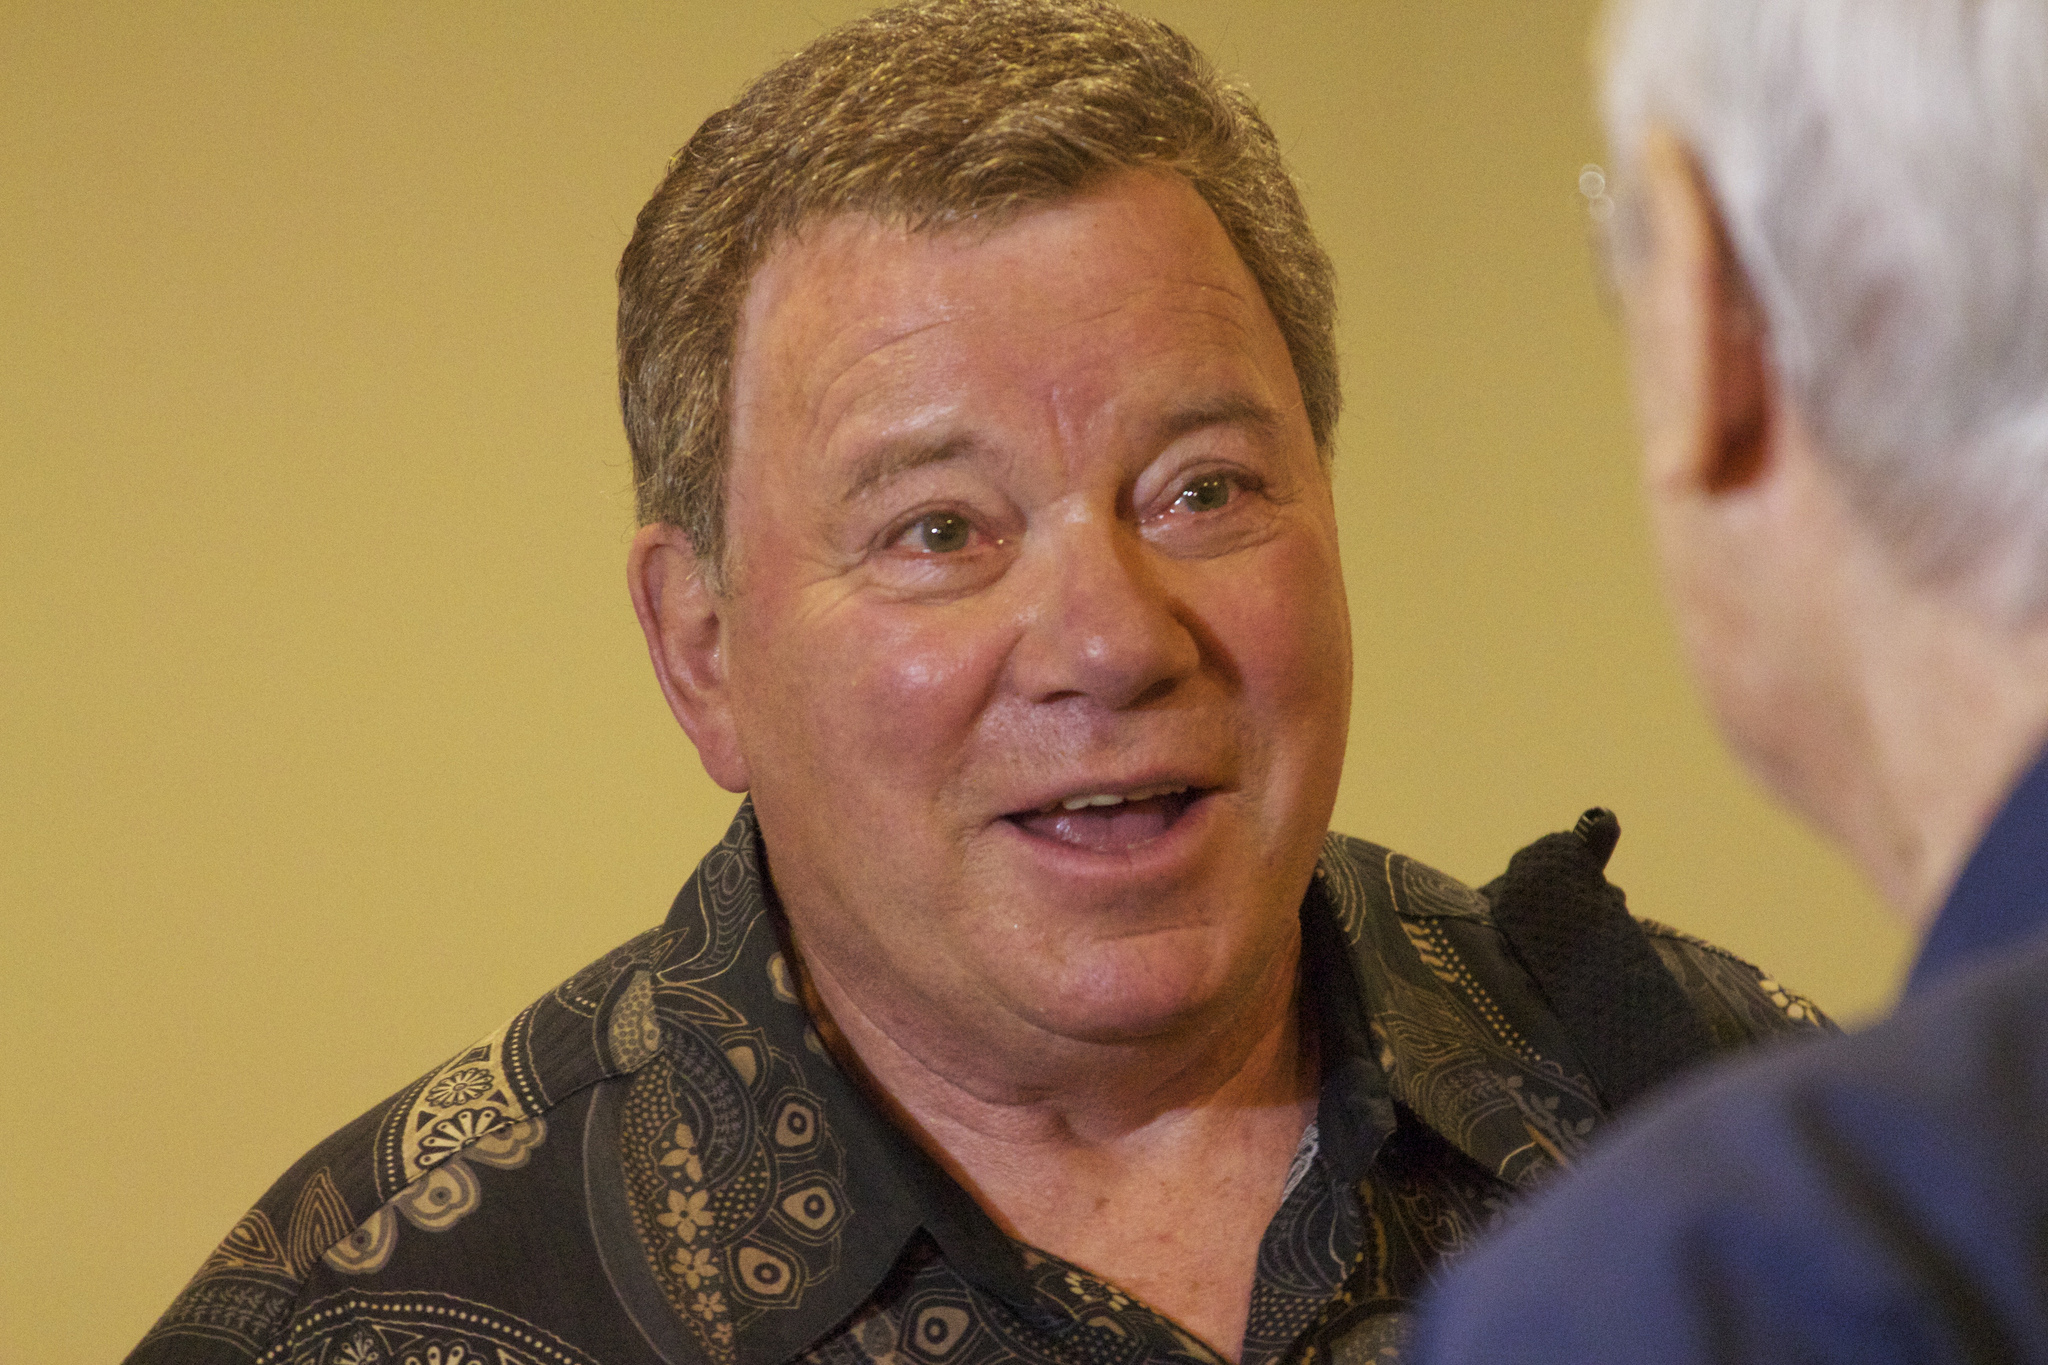 William-Shatner-Facebook